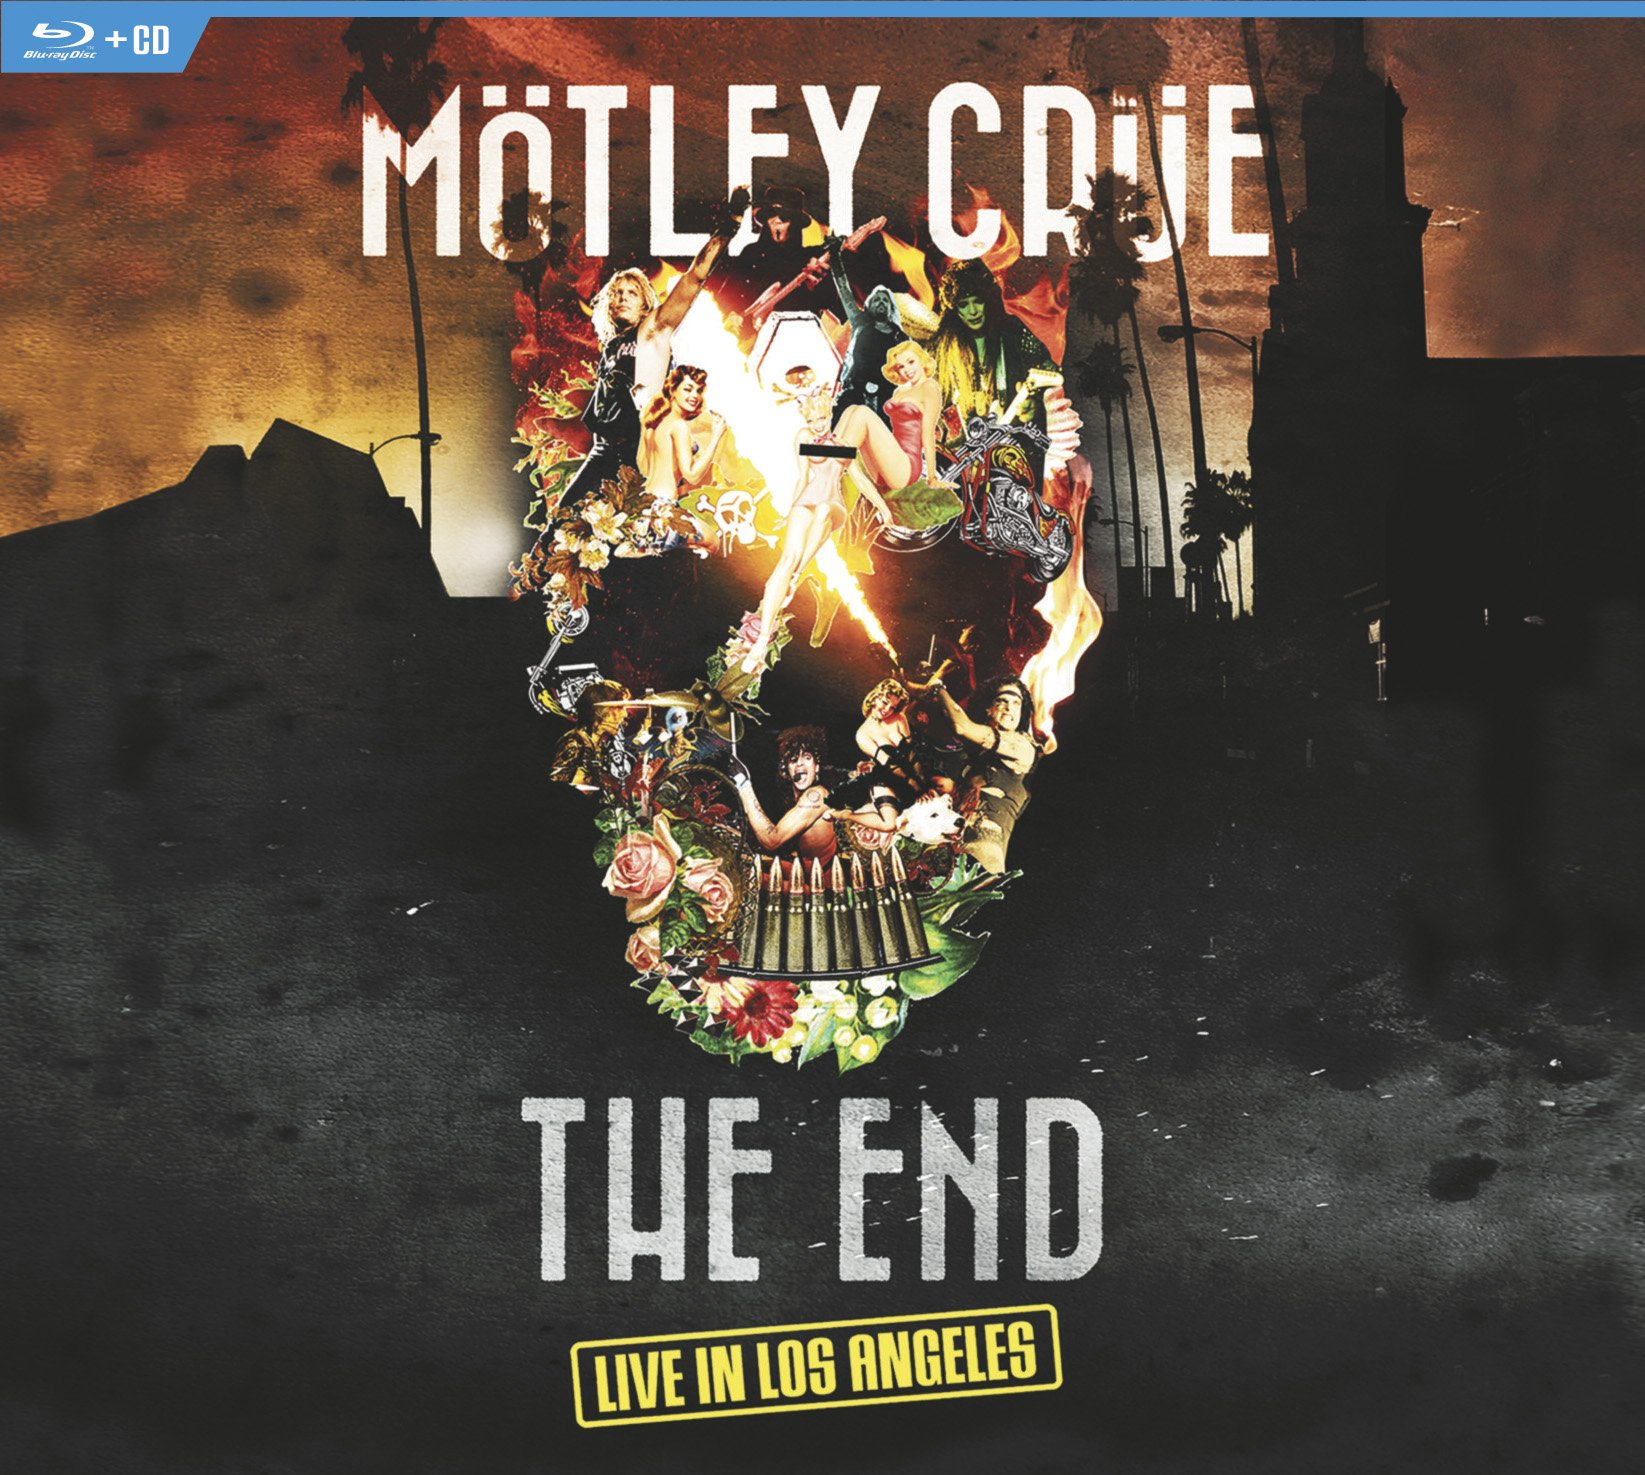 Blu-ray : Motley Crue - The End - Live In Los Angeles (With CD, 2 Disc)